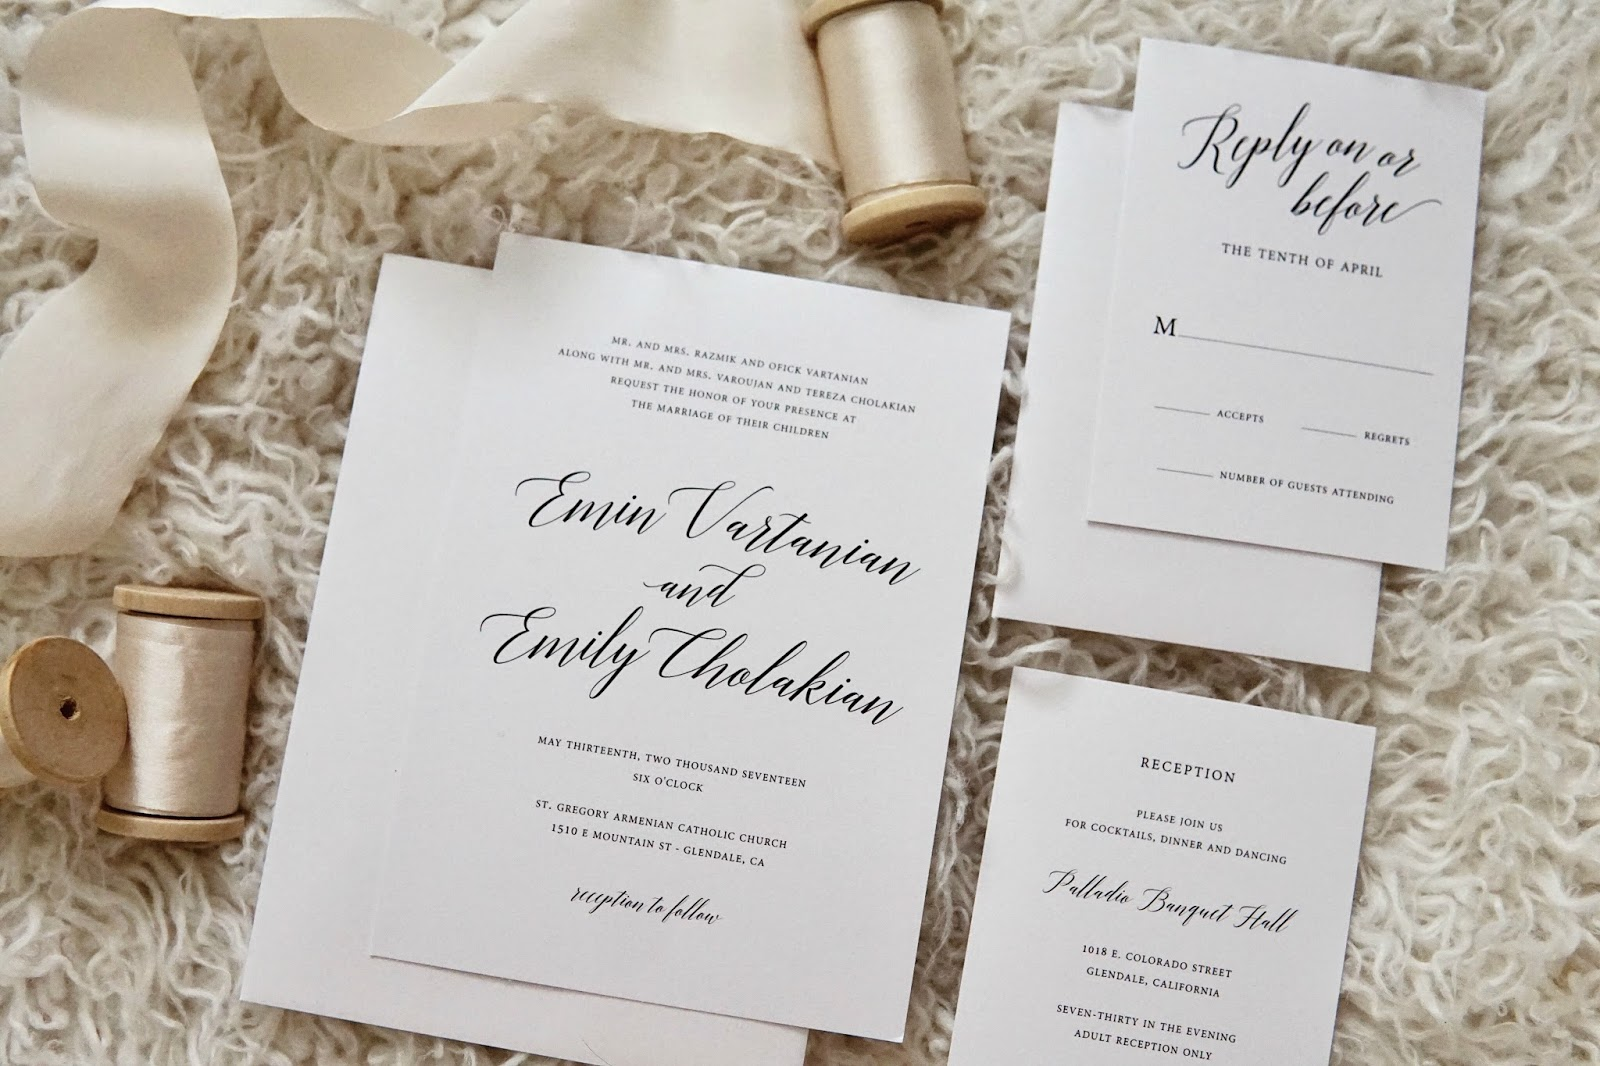 Wedding Invitation Makers: How To Make The Wedding Invitation Process Easier + My